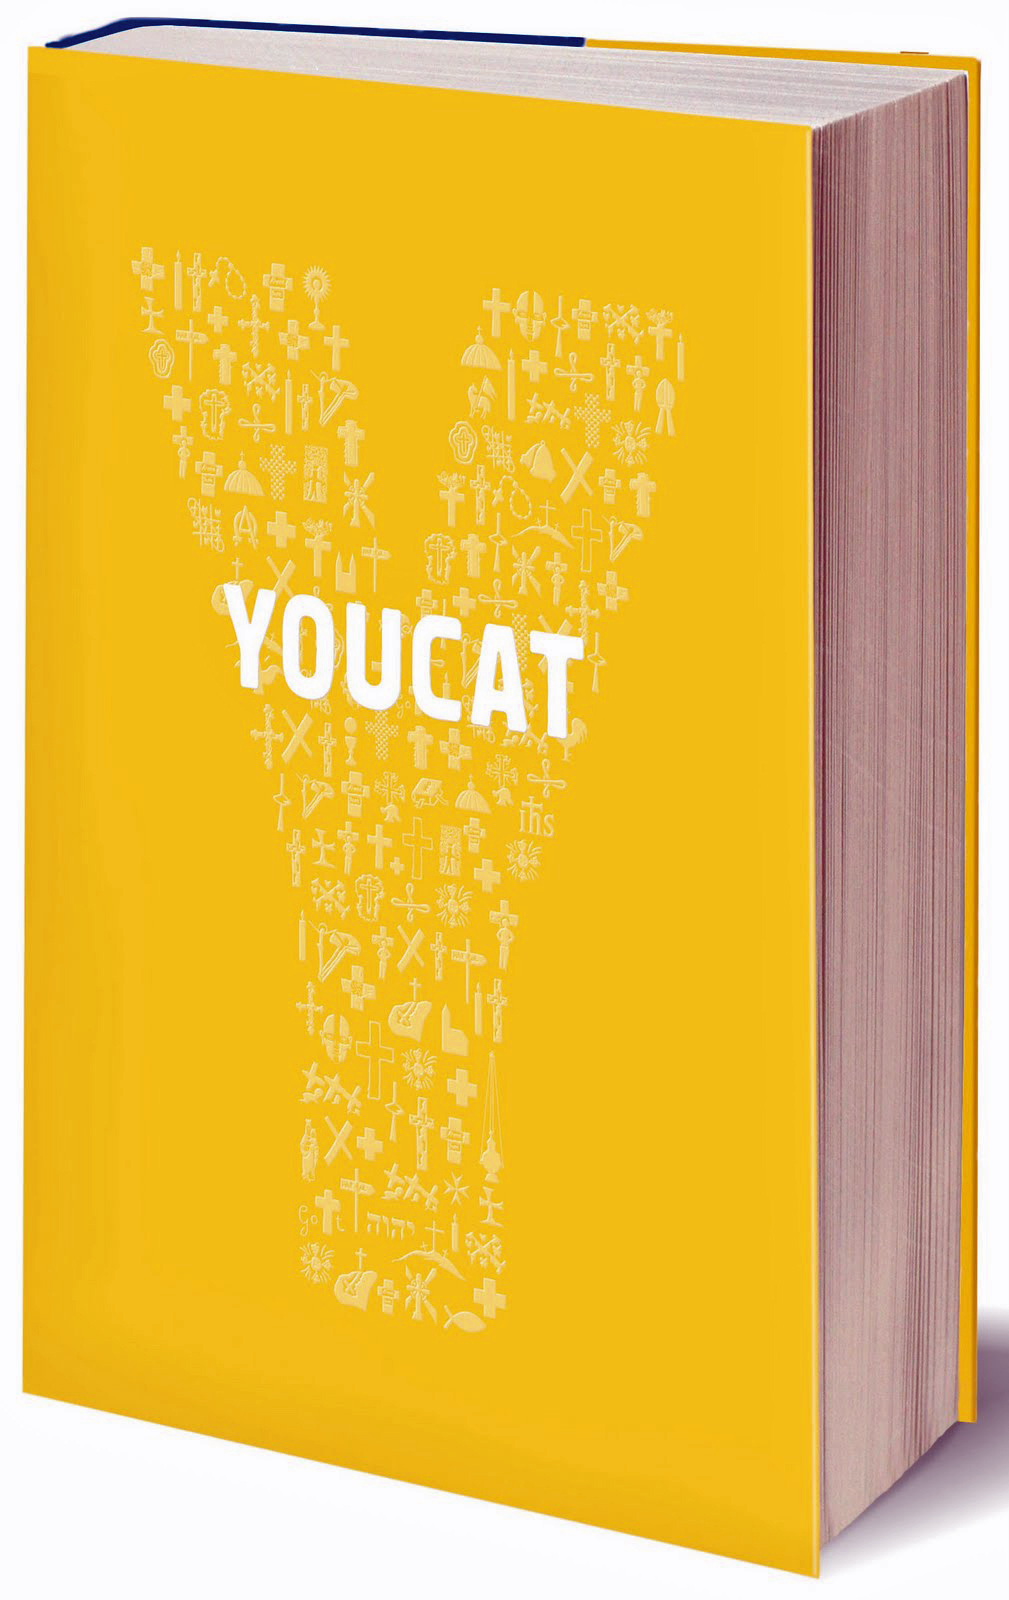 Youth Catechism (YouCat) Reviewed.